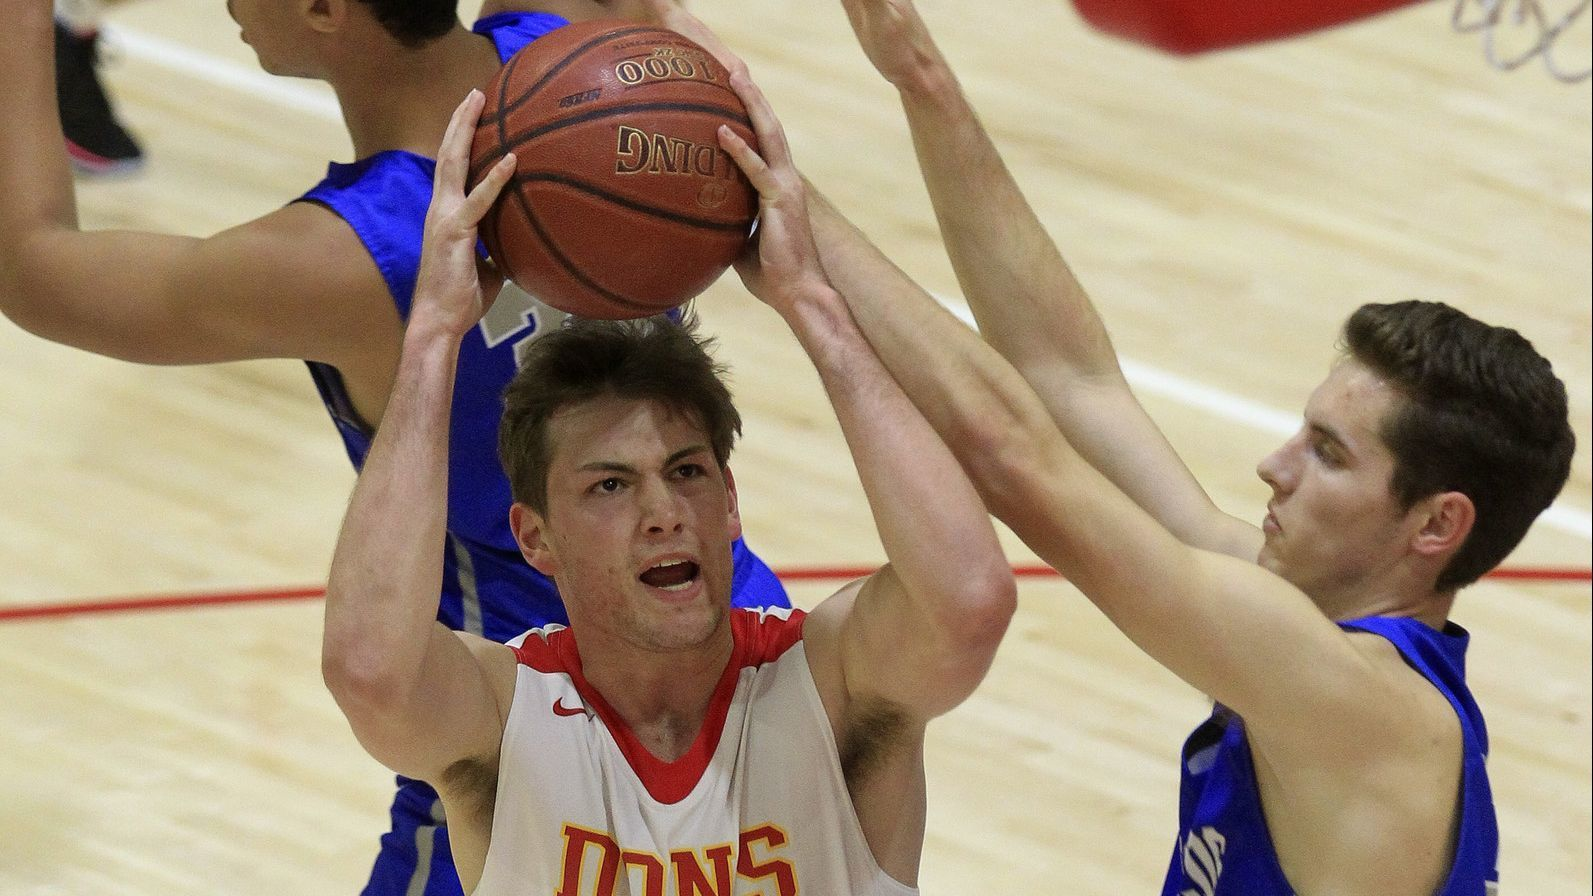 Boys basketball semifinals: Soph touch for Dons